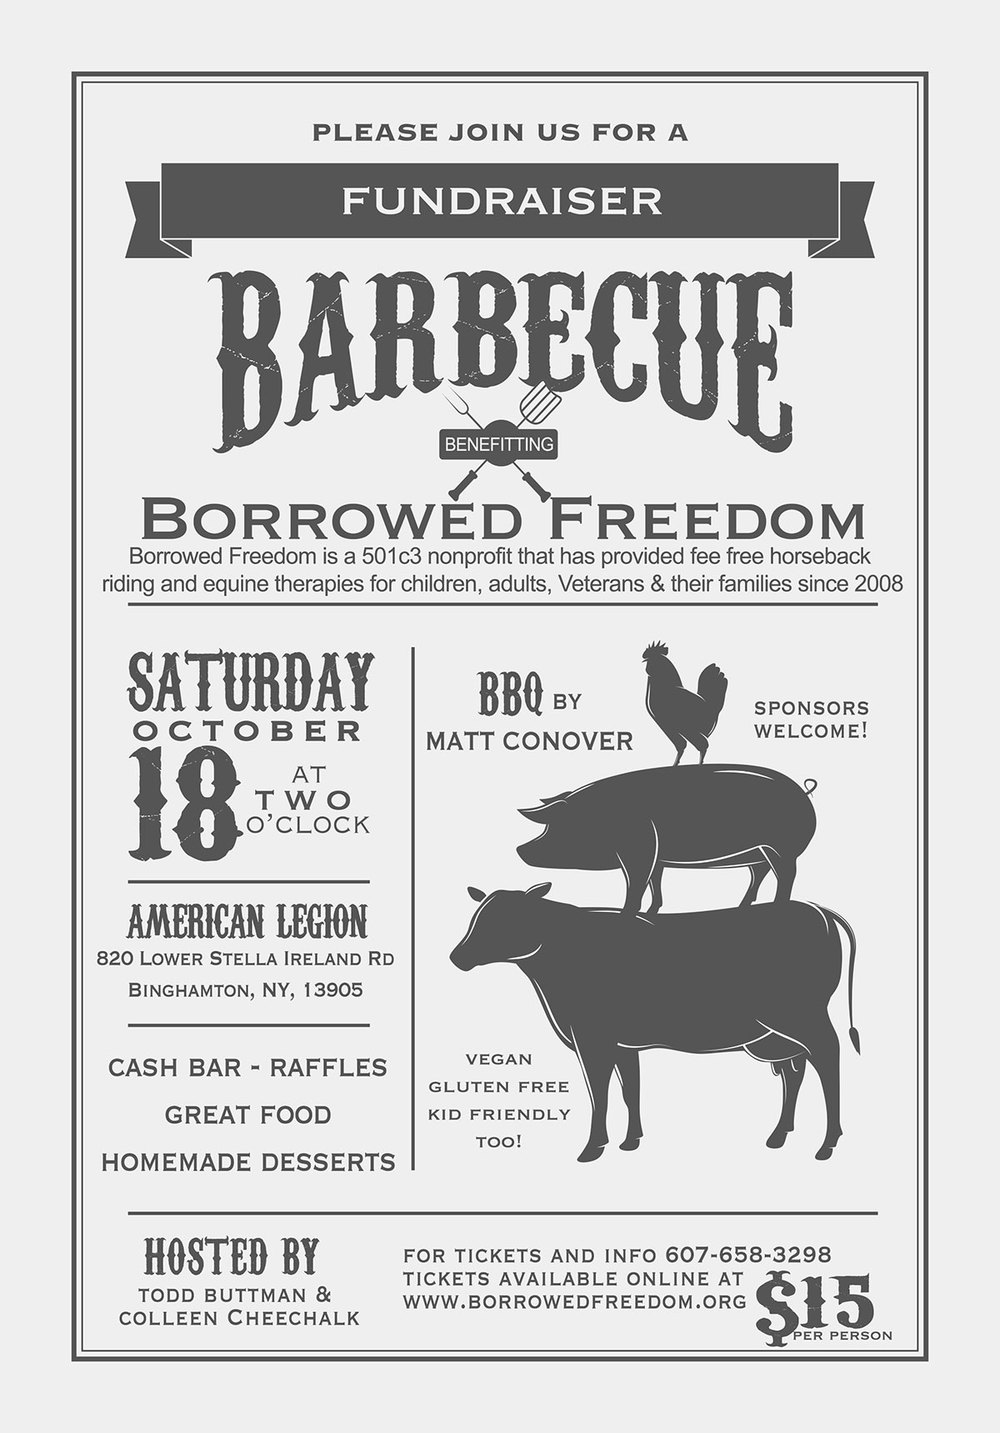 Borrowed Freedom benefit fundraiser 10/18/20014 click to visit BFEAT for more info